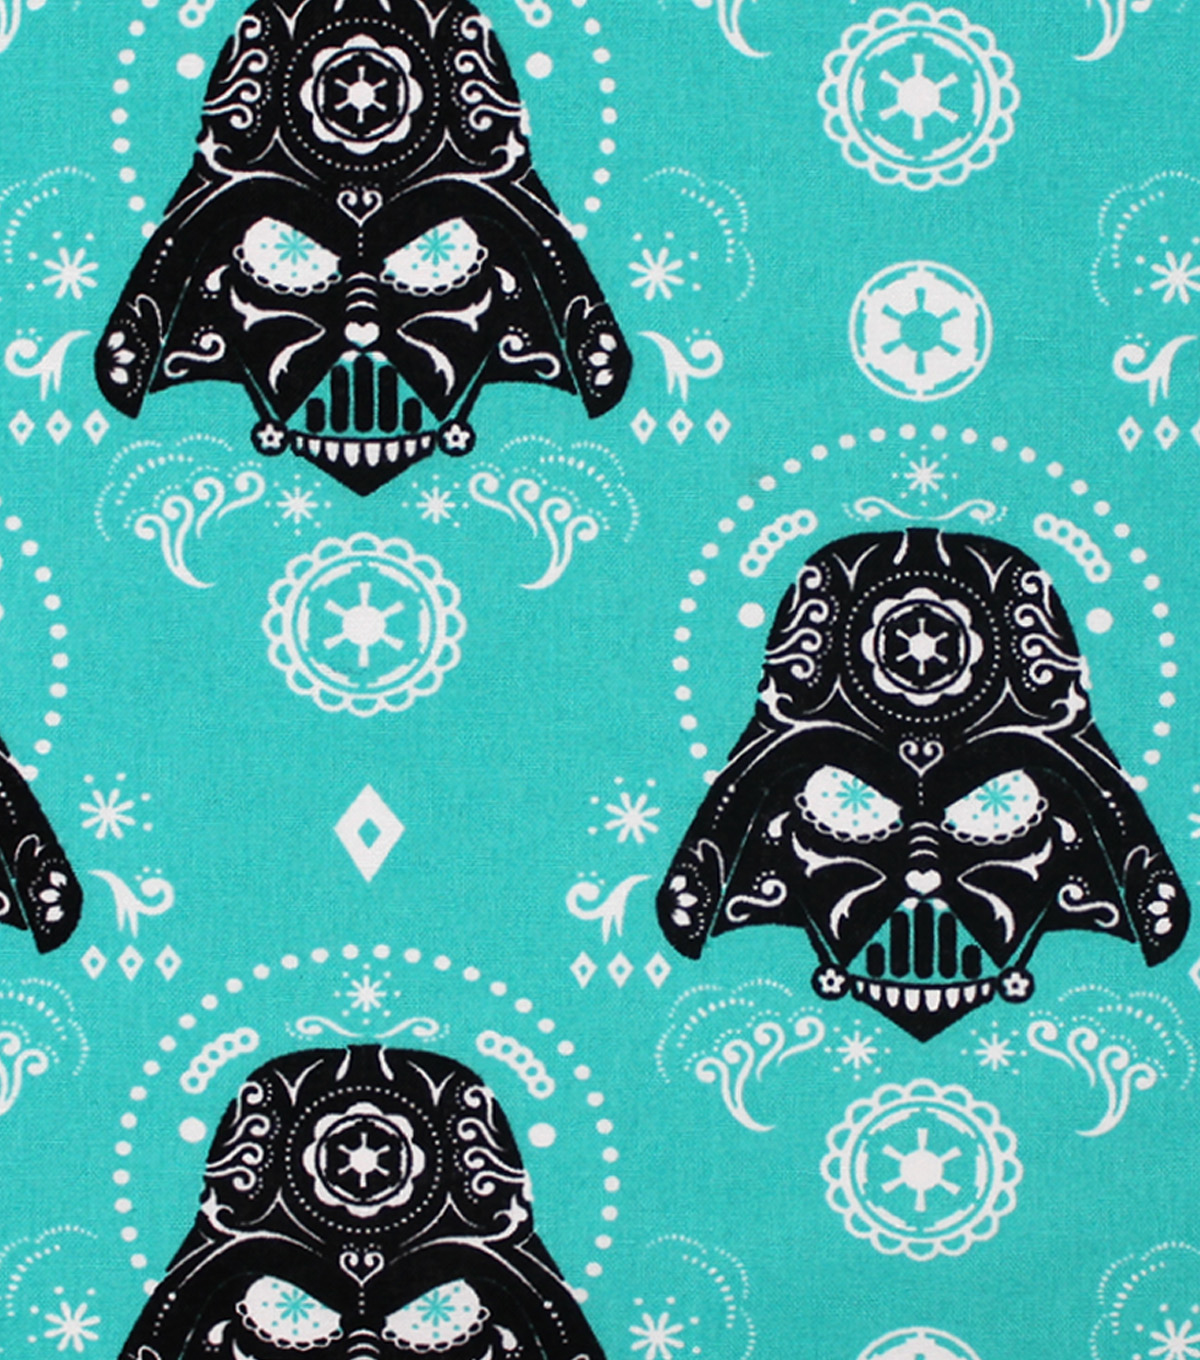 Star Wars Cotton Fabric -Darth Vaders Sugar Skulls